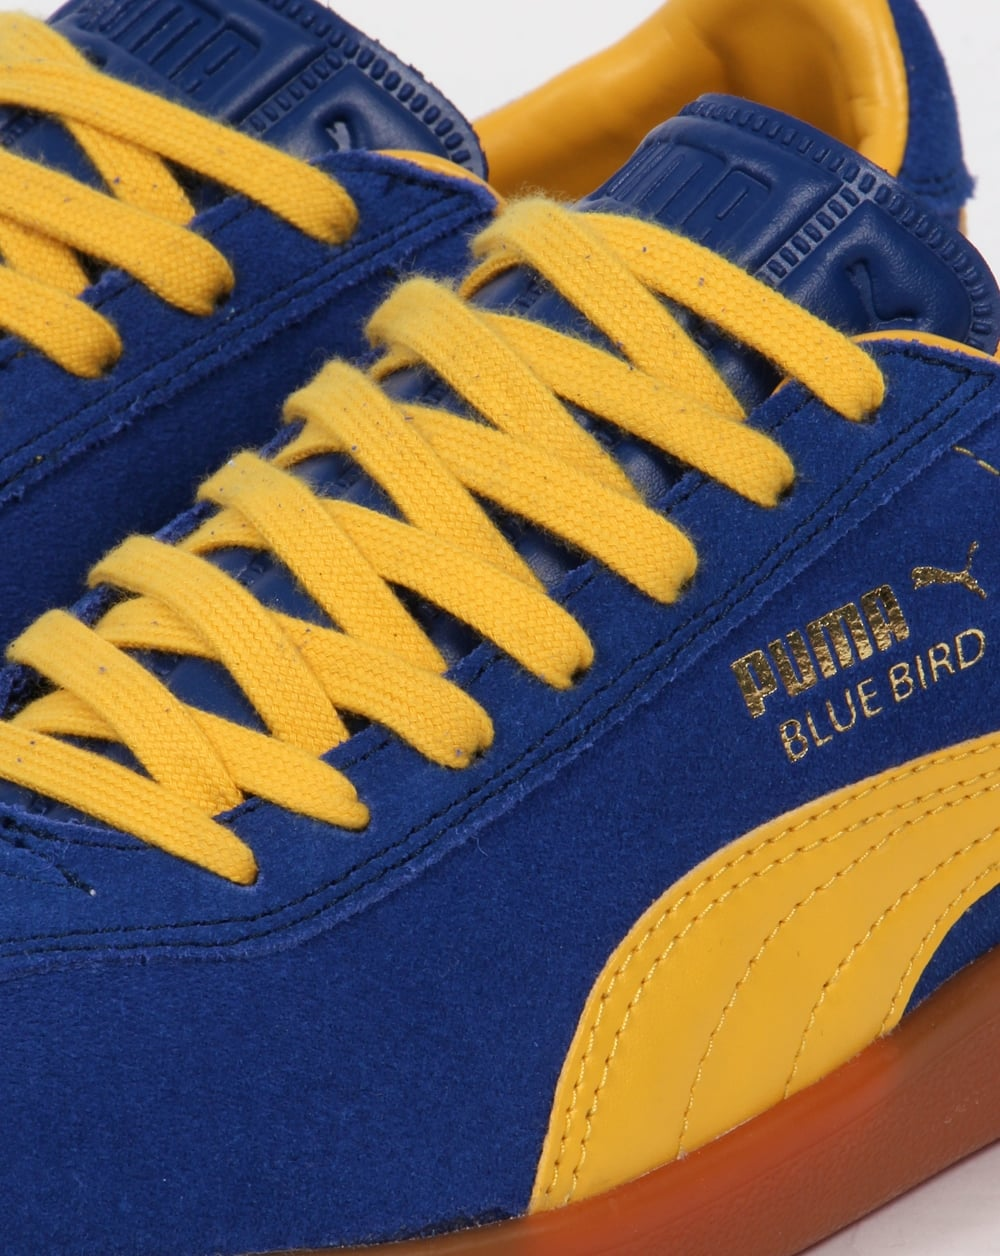 puma blue and yellow shoes off 54